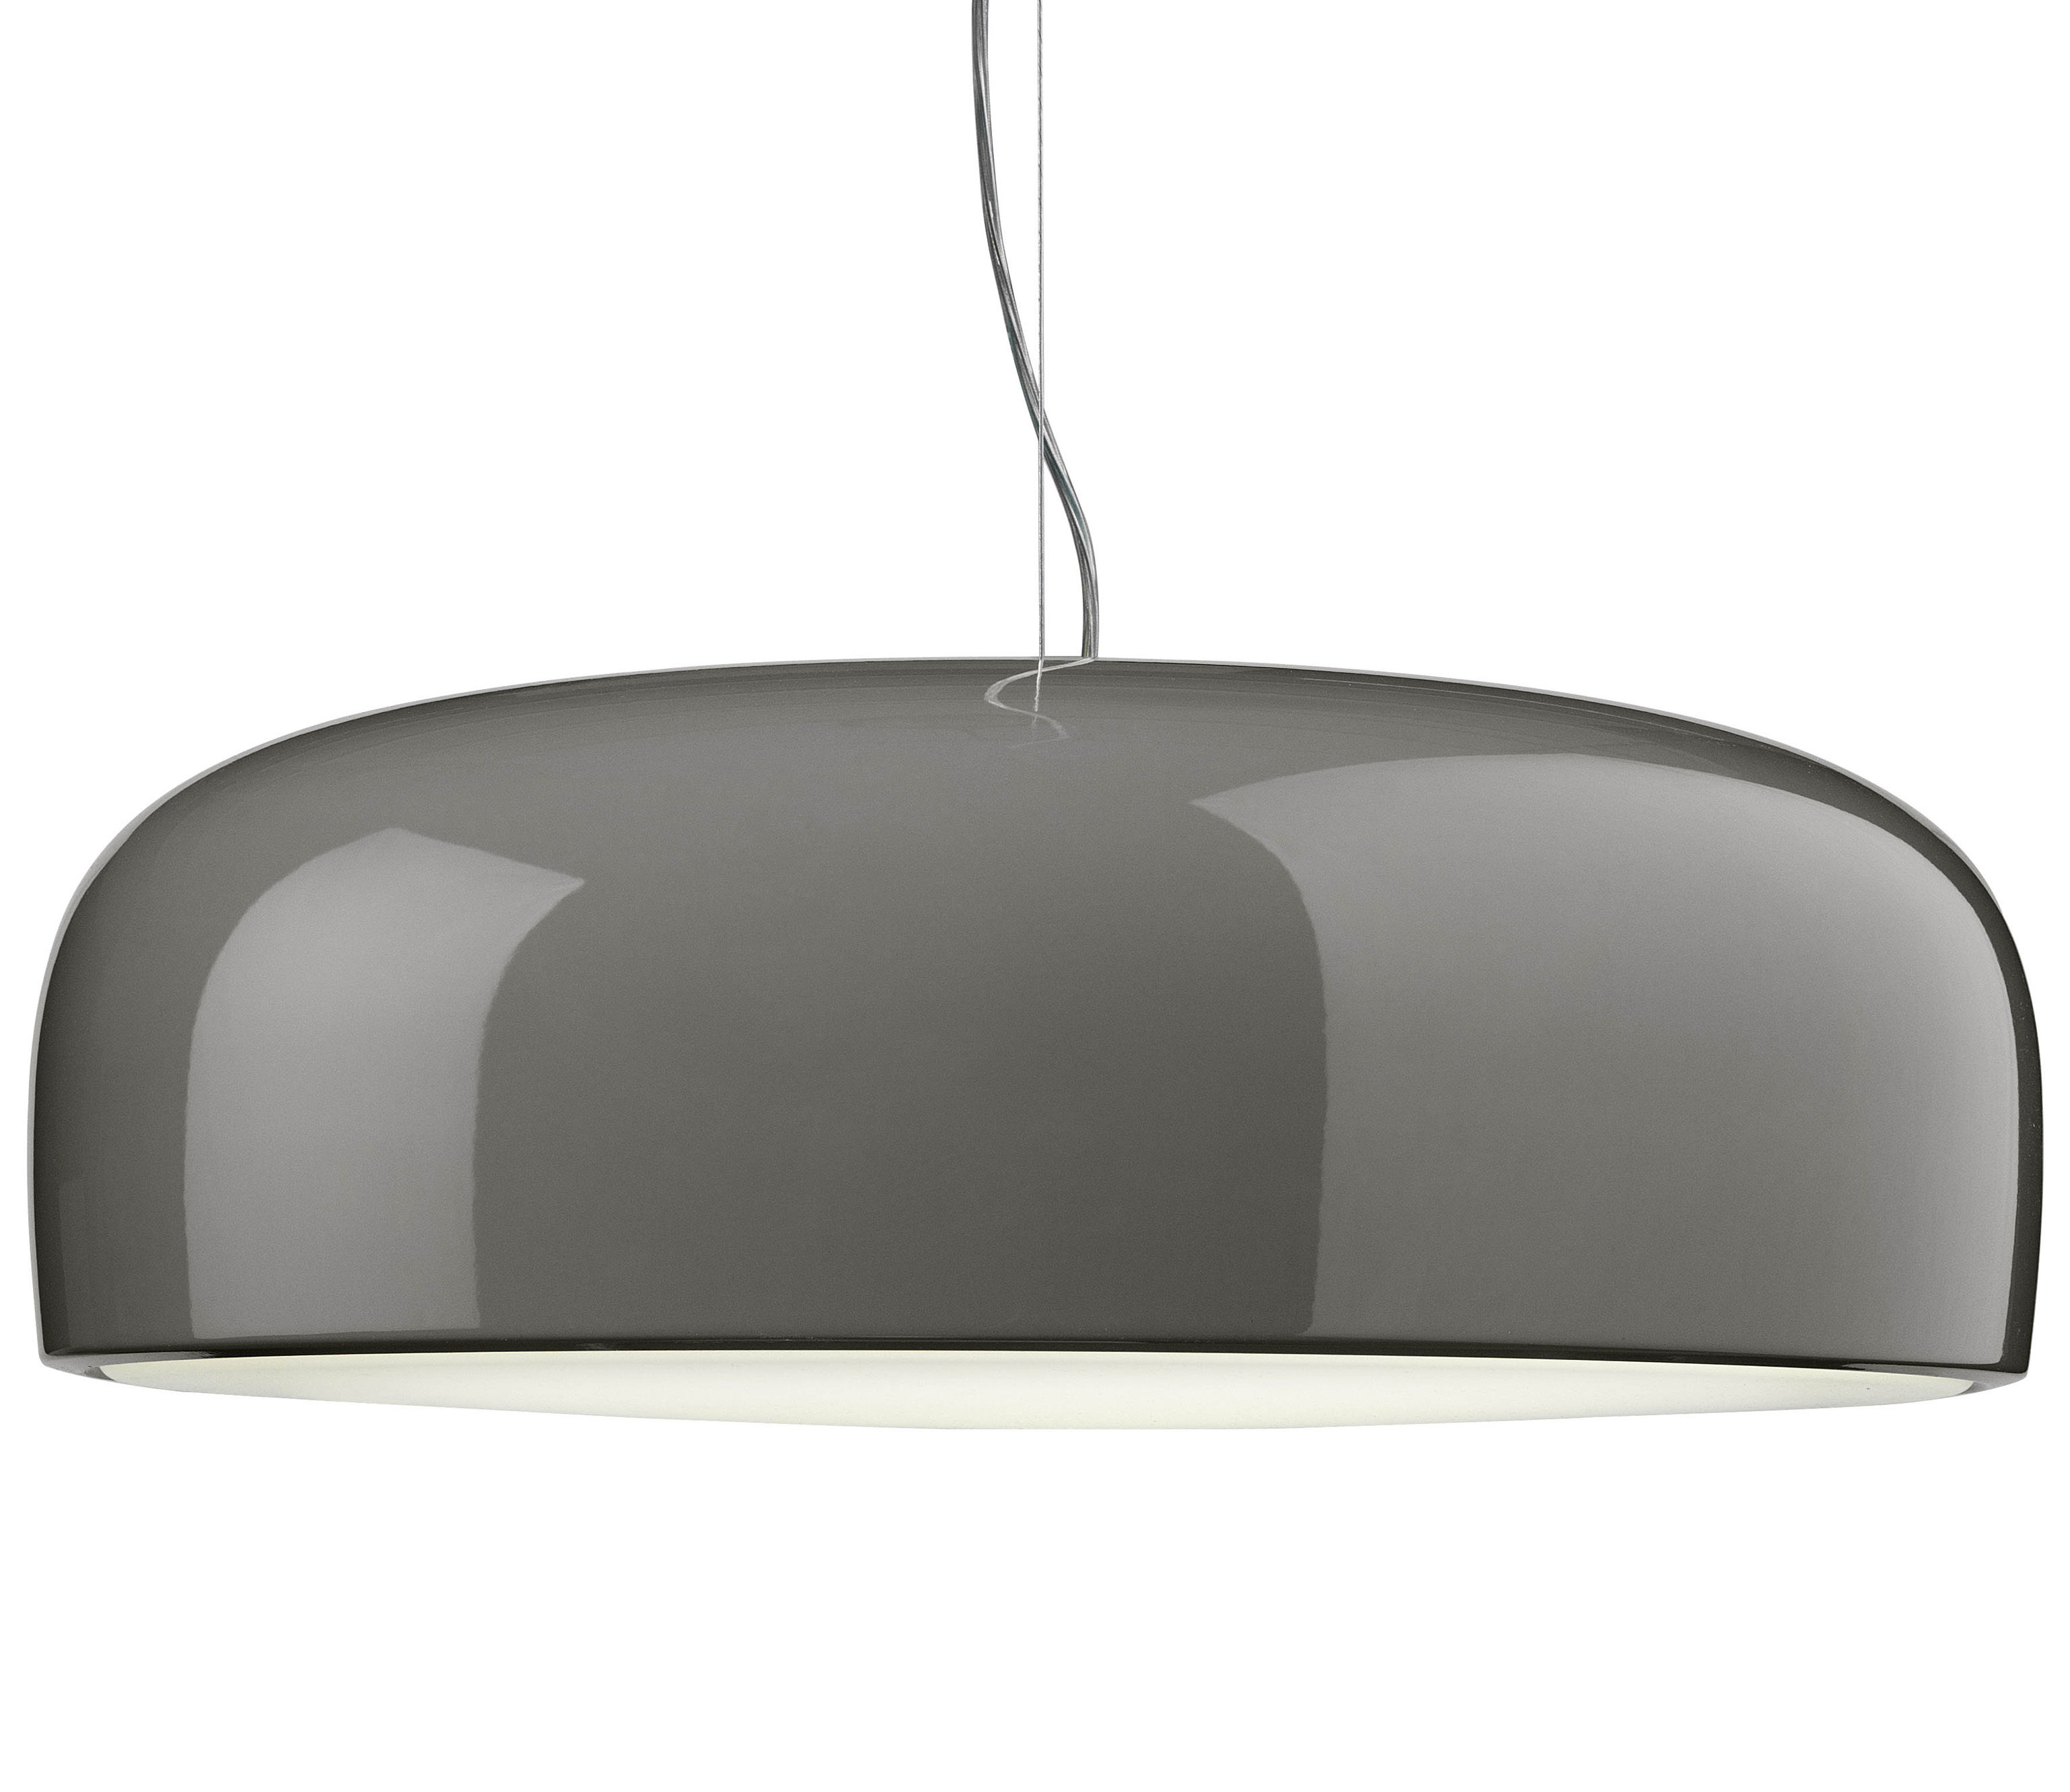 Lighting - Pendant Lighting - Smithfield Pendant by Flos - Halogen - Taupe grey - Painted aluminium, Polycarbonate